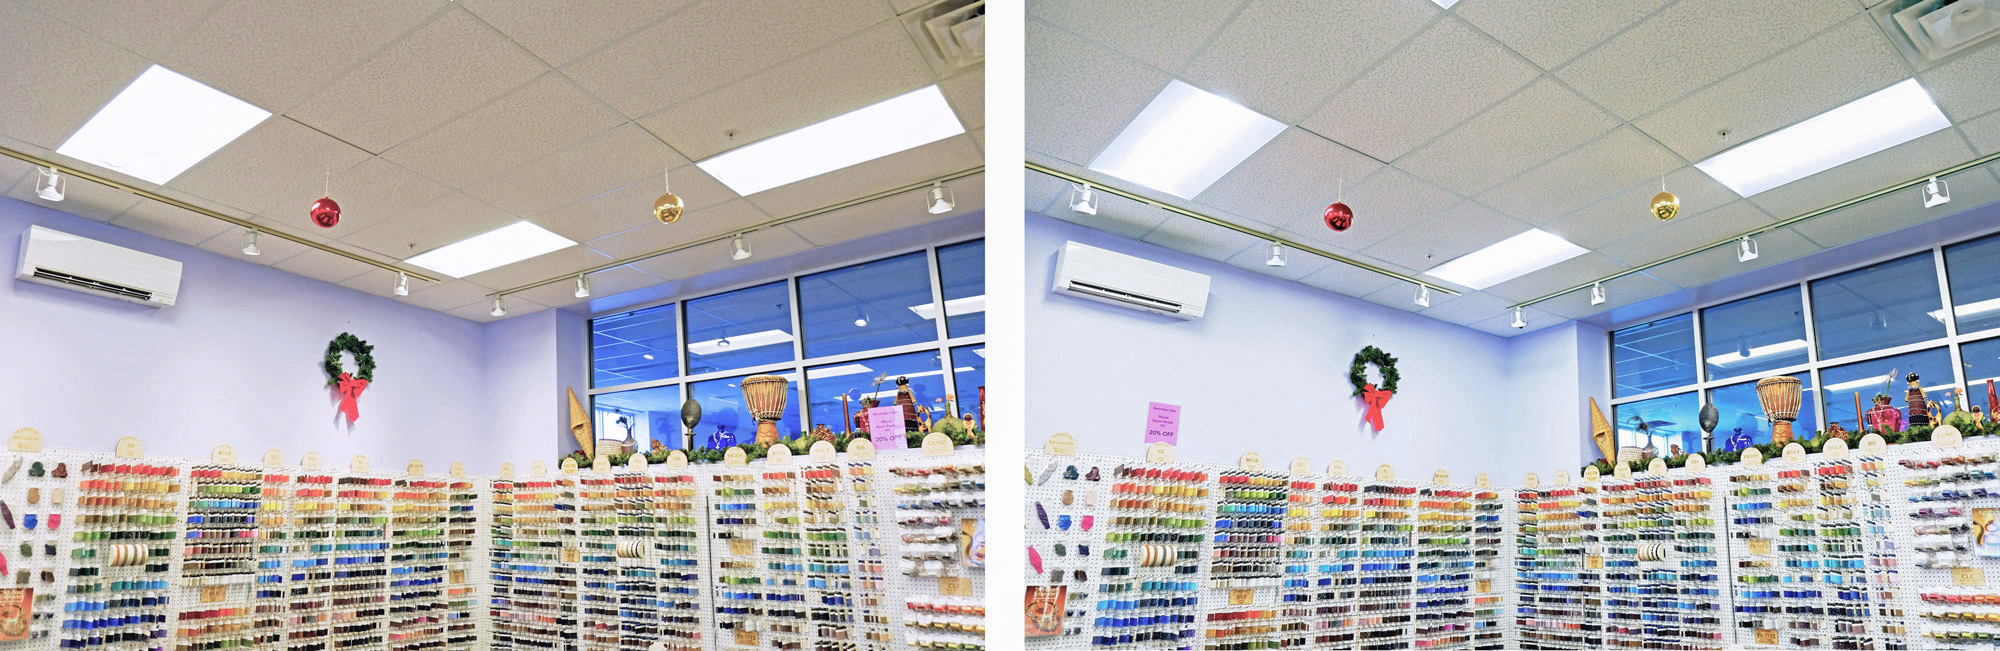 Commercial LED Lighting | Facility Lighting Retrofits to Save Energy